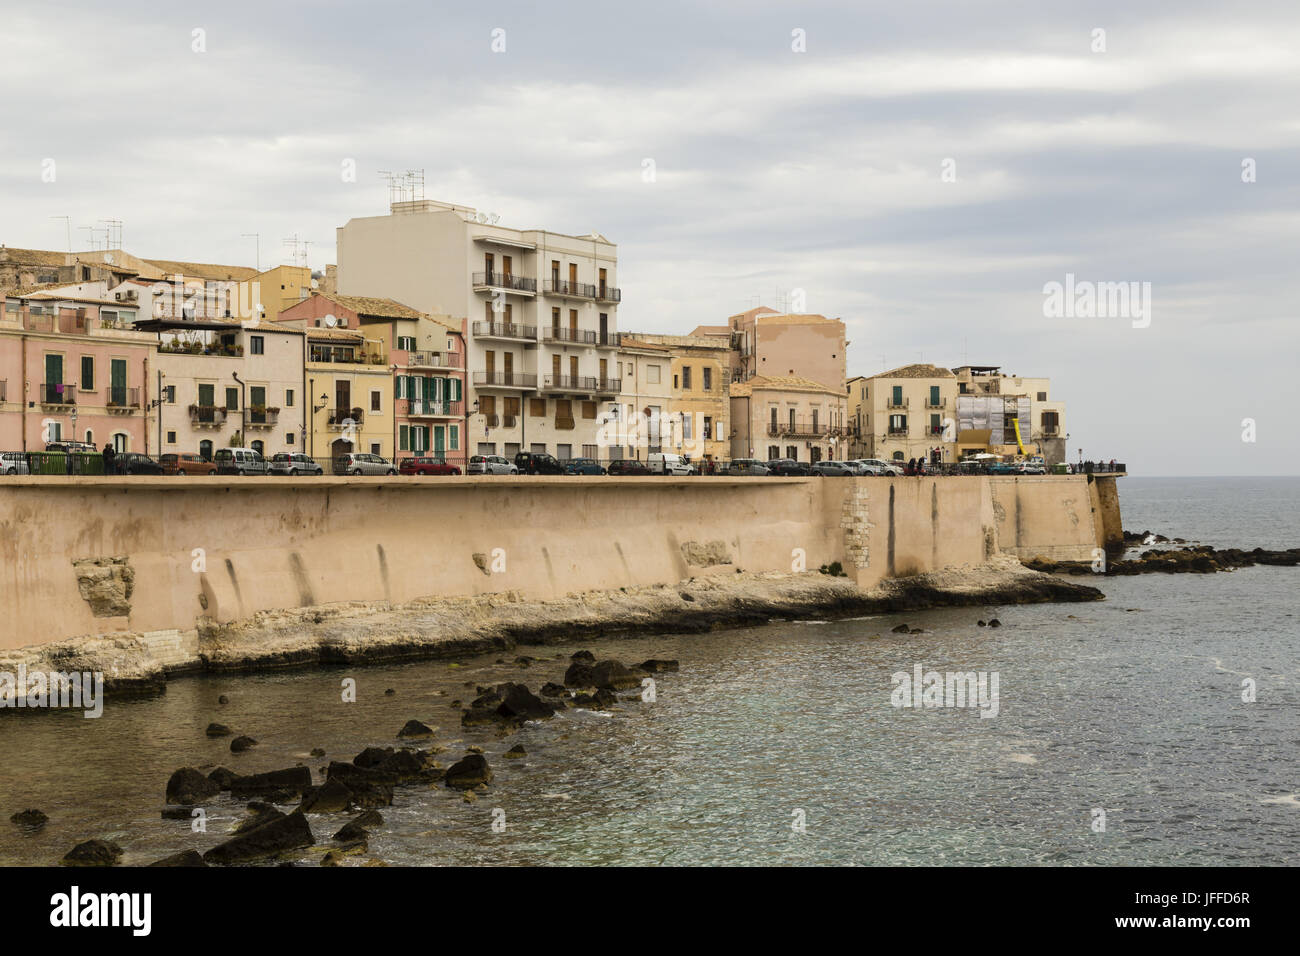 old town of Syracuse, Sicily, Italy - Stock Image